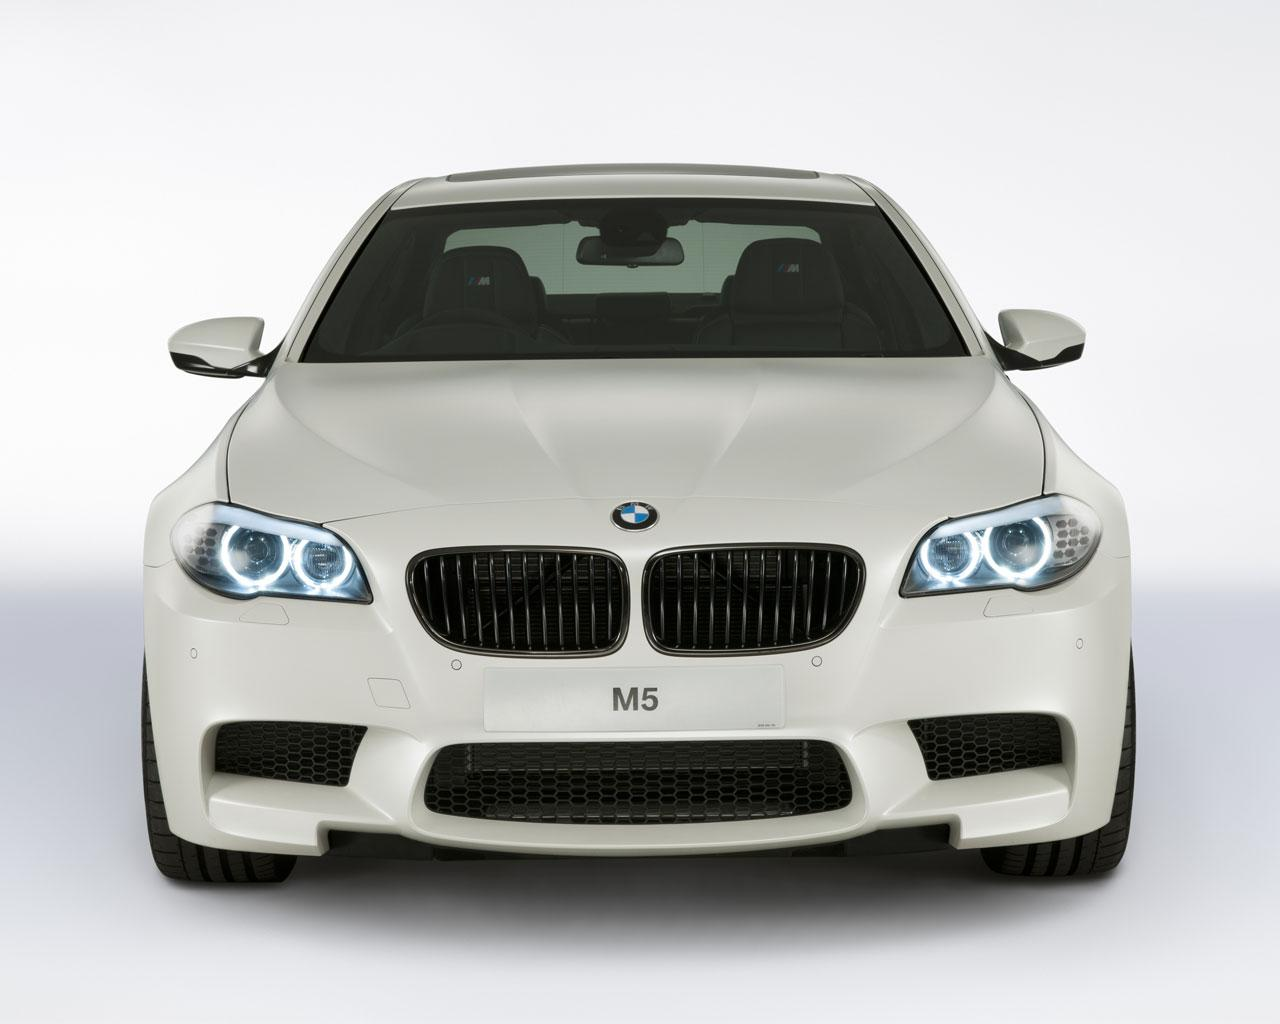 2012 Bmw M5 M Performance Edition Details And Pricing